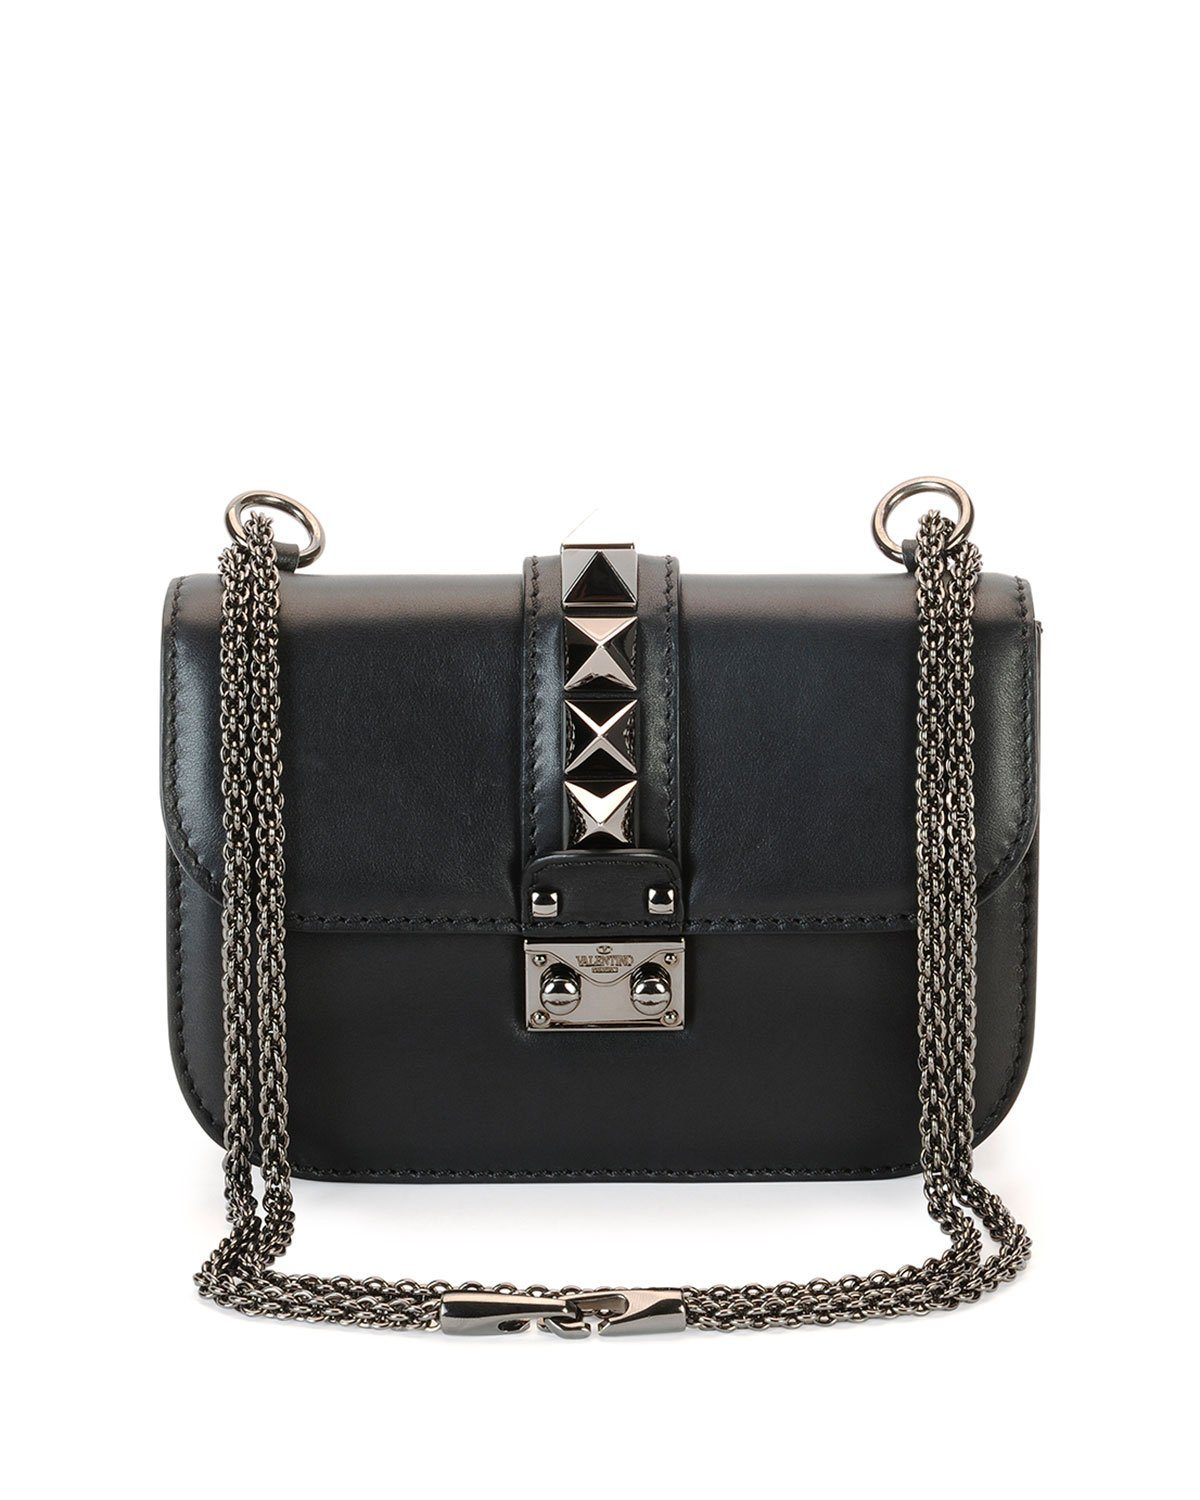 Gallery Previously Sold At Bergdorf Goodman Women S Valentino Rockstud Bags